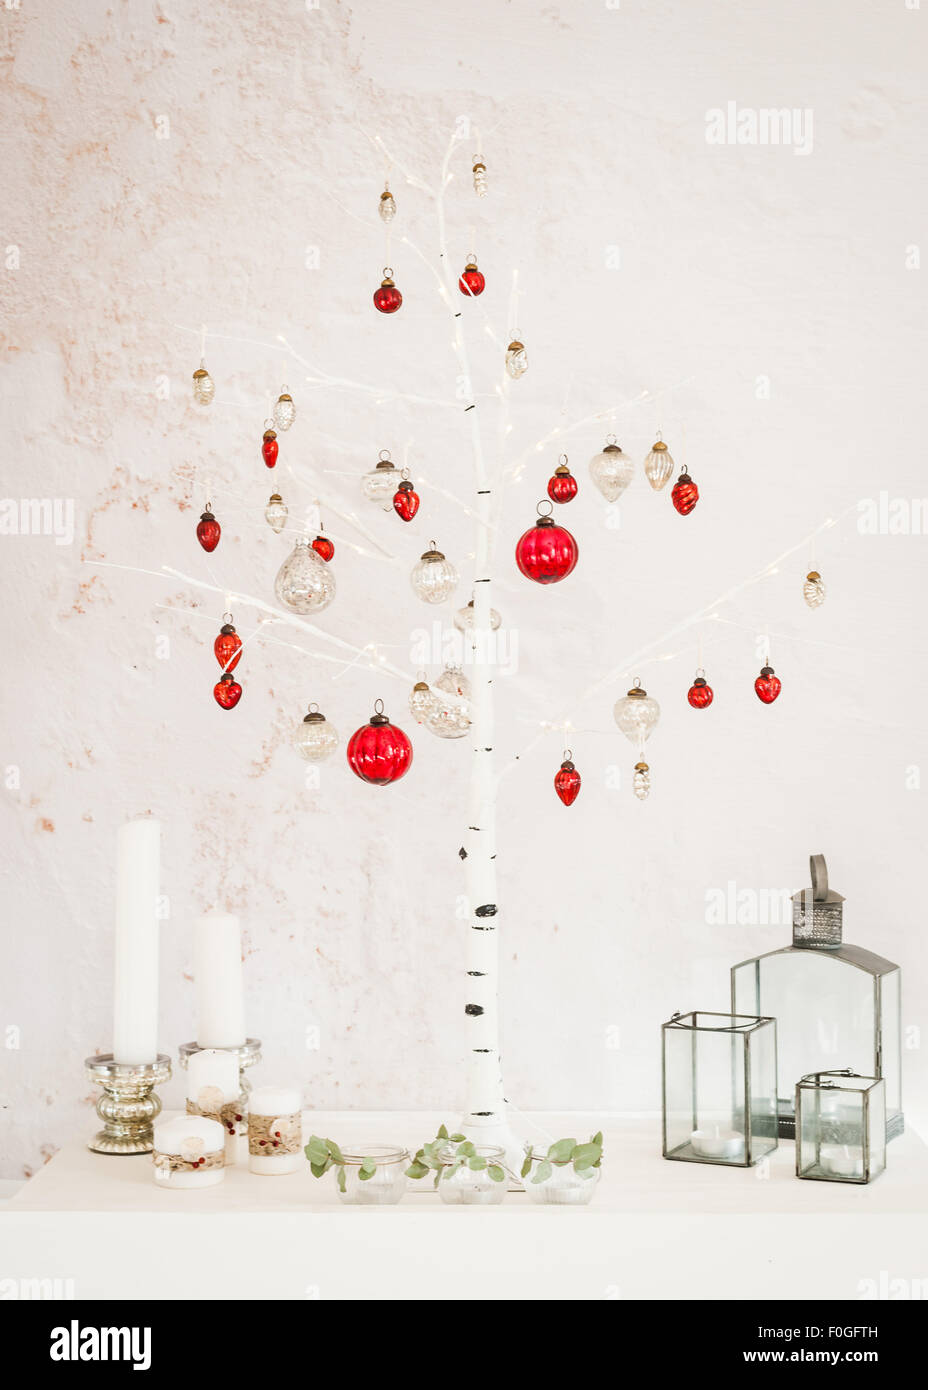 alternative christmas tree stock photos alternative christmas tree stock images alamy. Black Bedroom Furniture Sets. Home Design Ideas